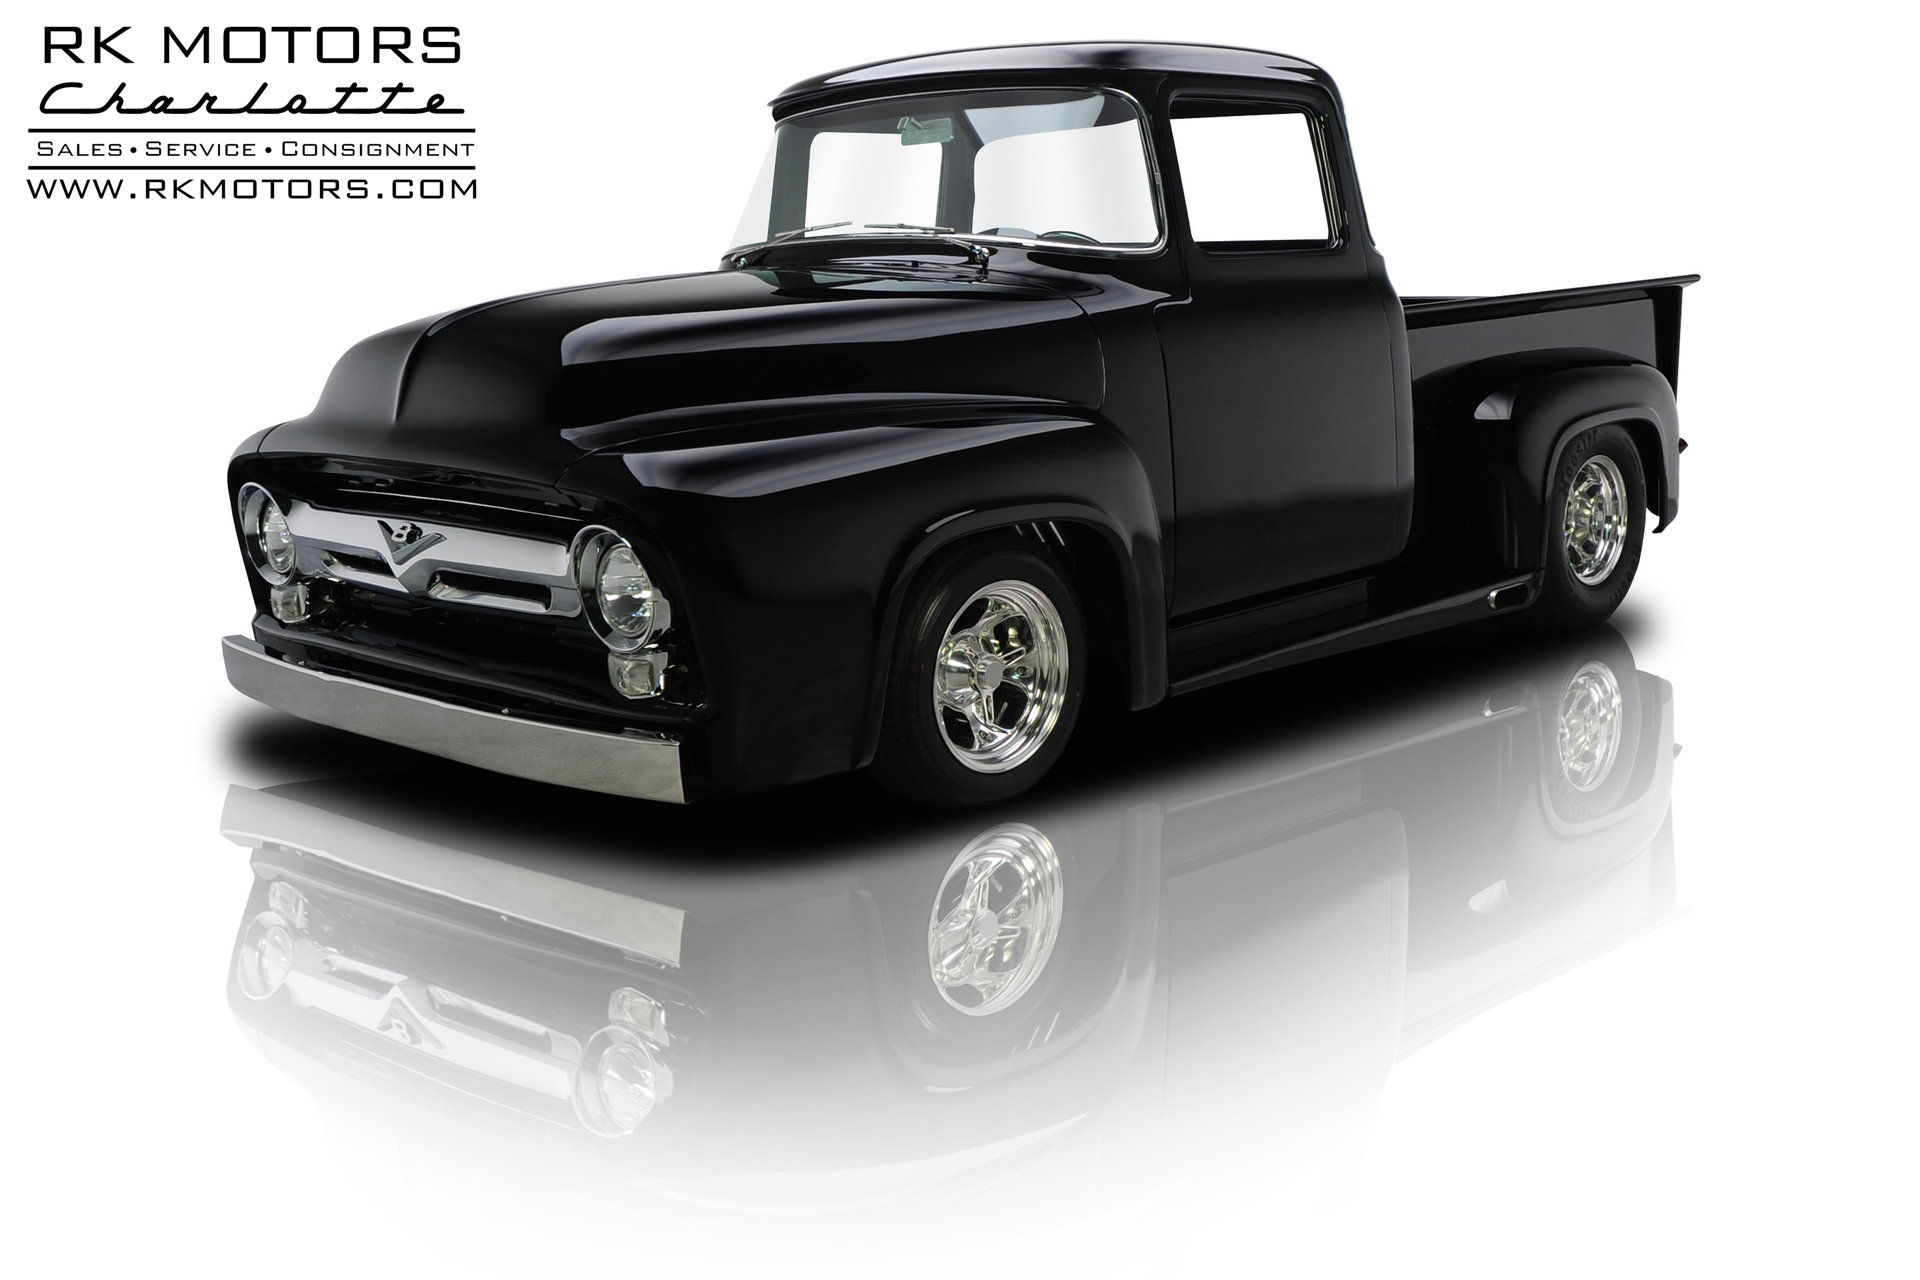 133061 1956 Ford F100 | RK Motors Classic and Performance Cars for Sale